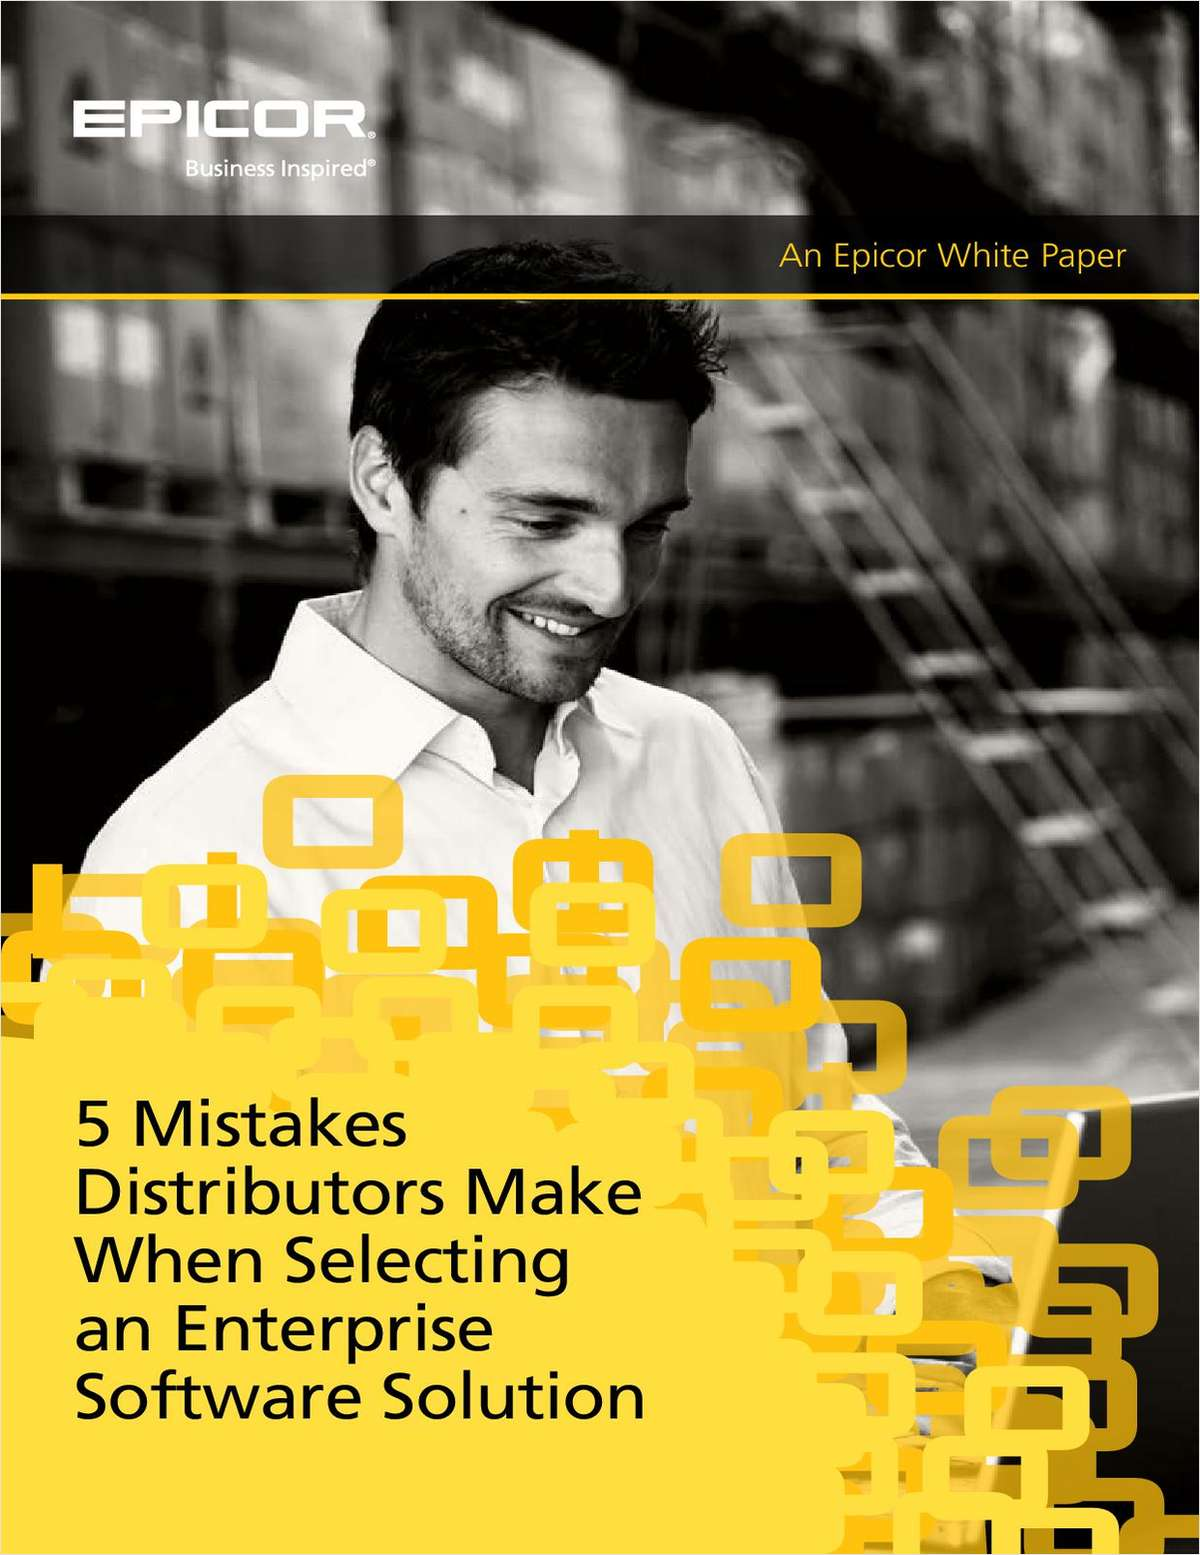 5 Mistakes Distributors Make When Selecting an Enterprise Software Solution